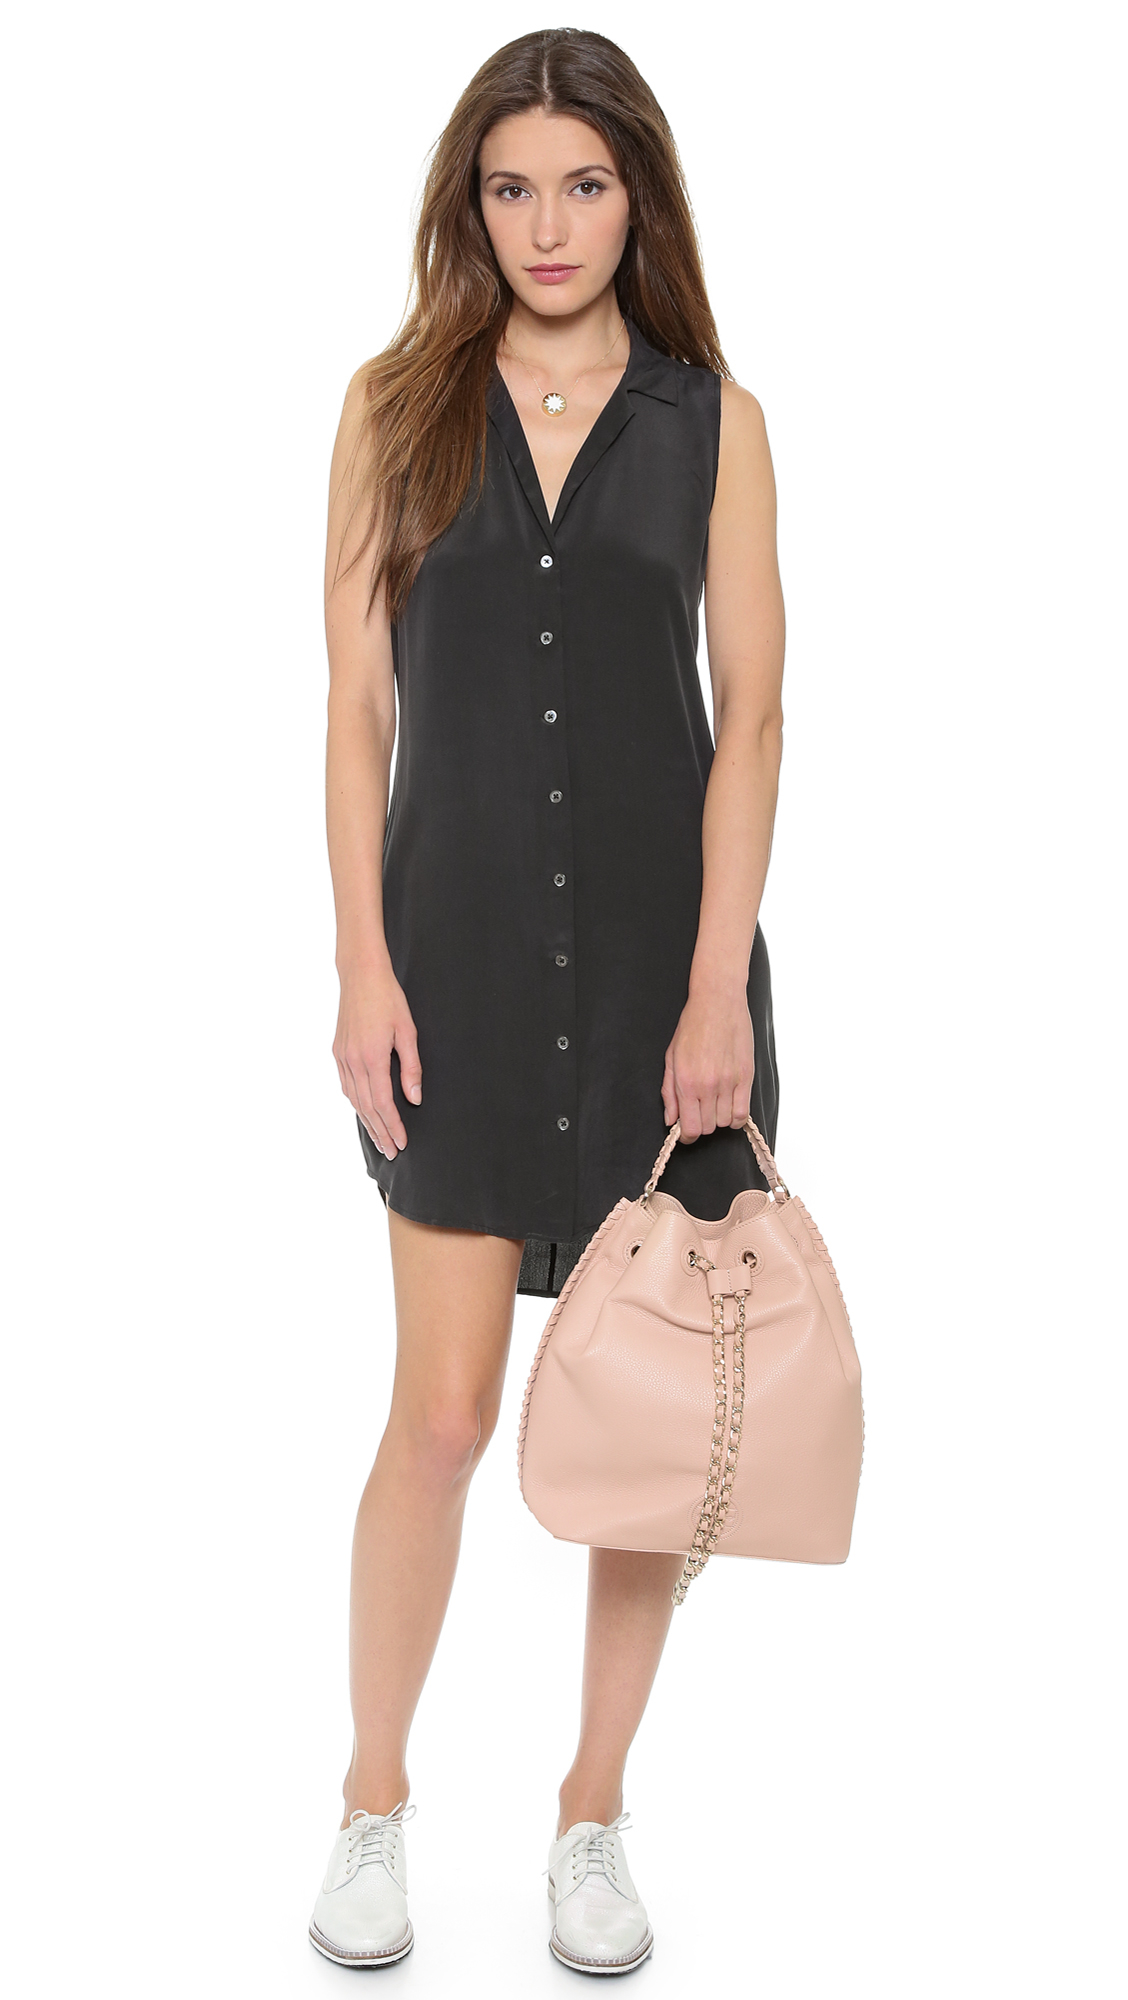 Lyst - Tory burch Marion Bucket Backpack